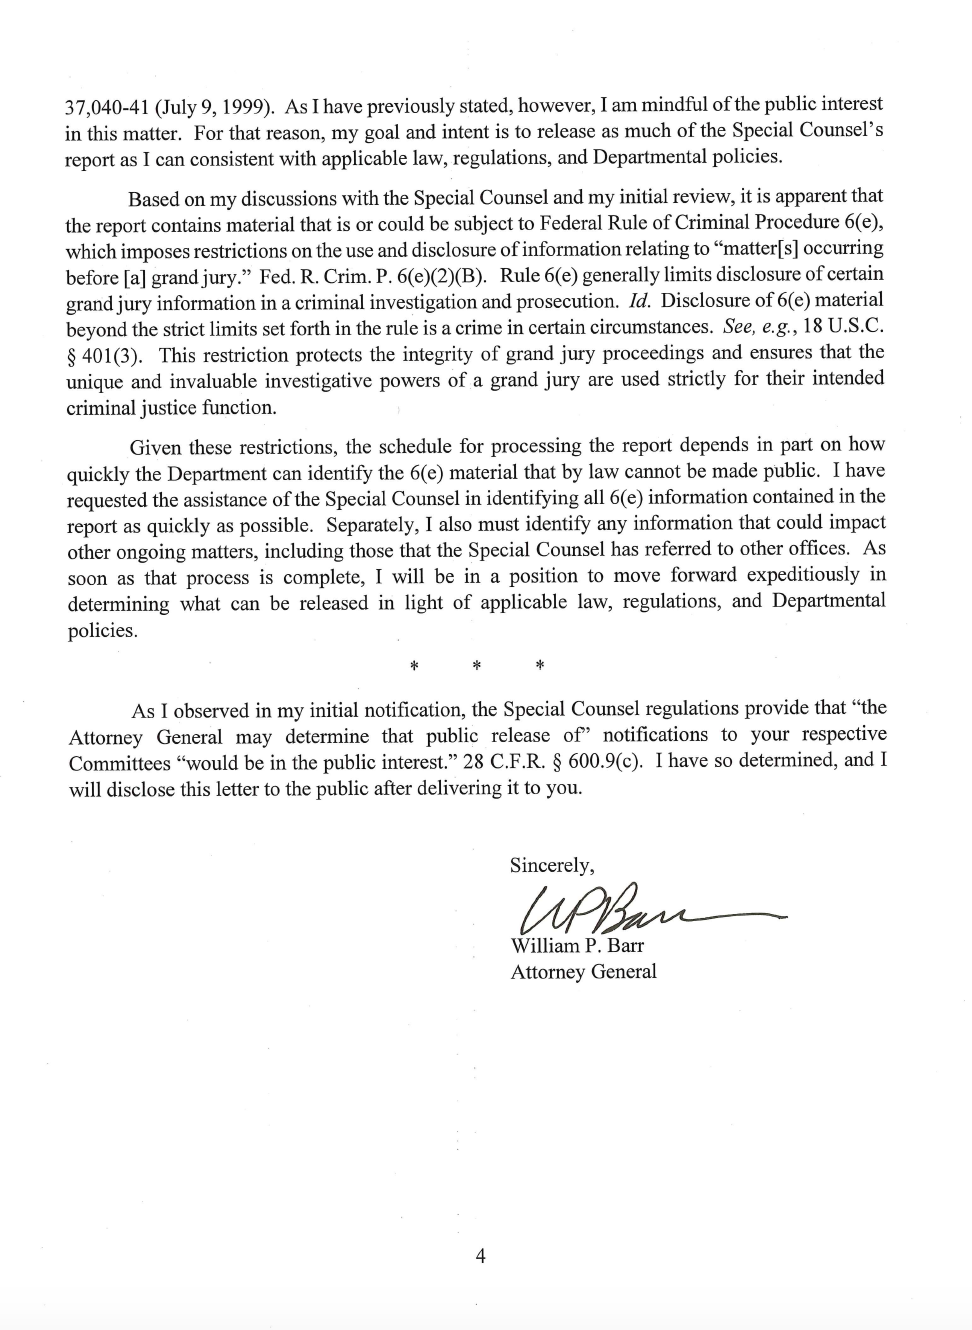 Page 4 of Attorney General William Barr's letter to Congress on Special Counsel Robert Mueller's report.